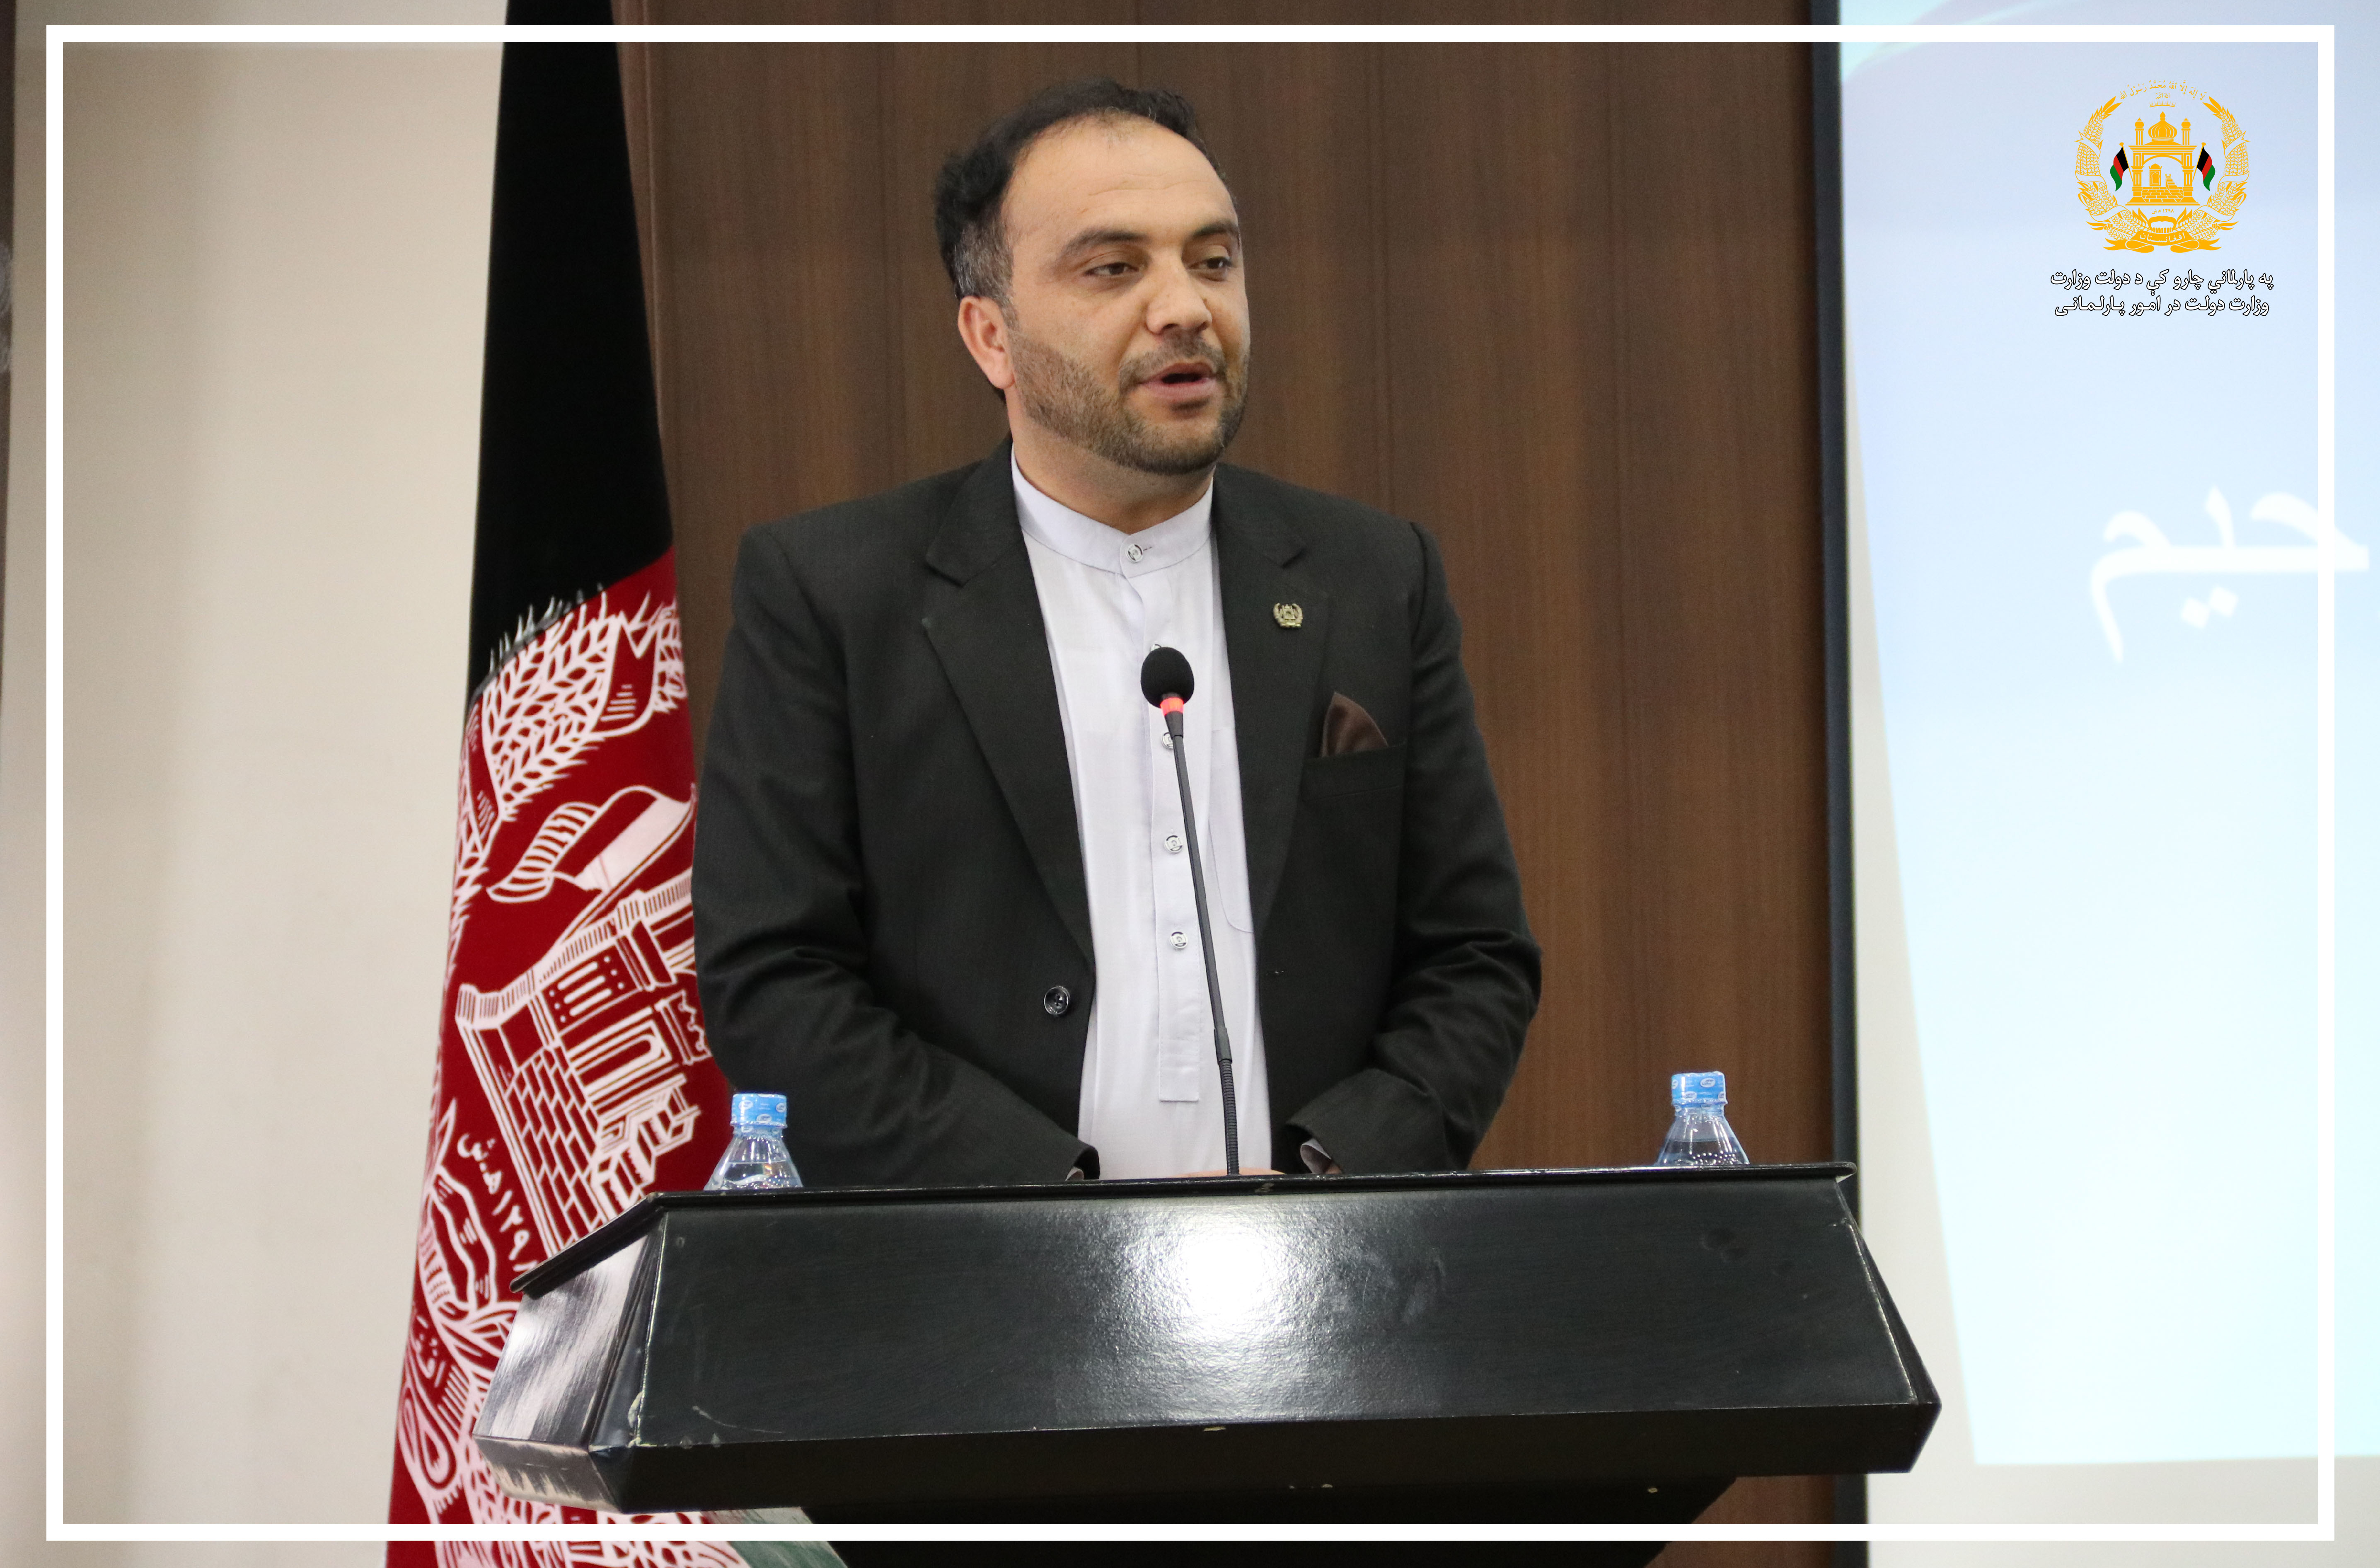 ICOIC holds Public Awareness Workshop of Afghanistan's Constitution at SMPA